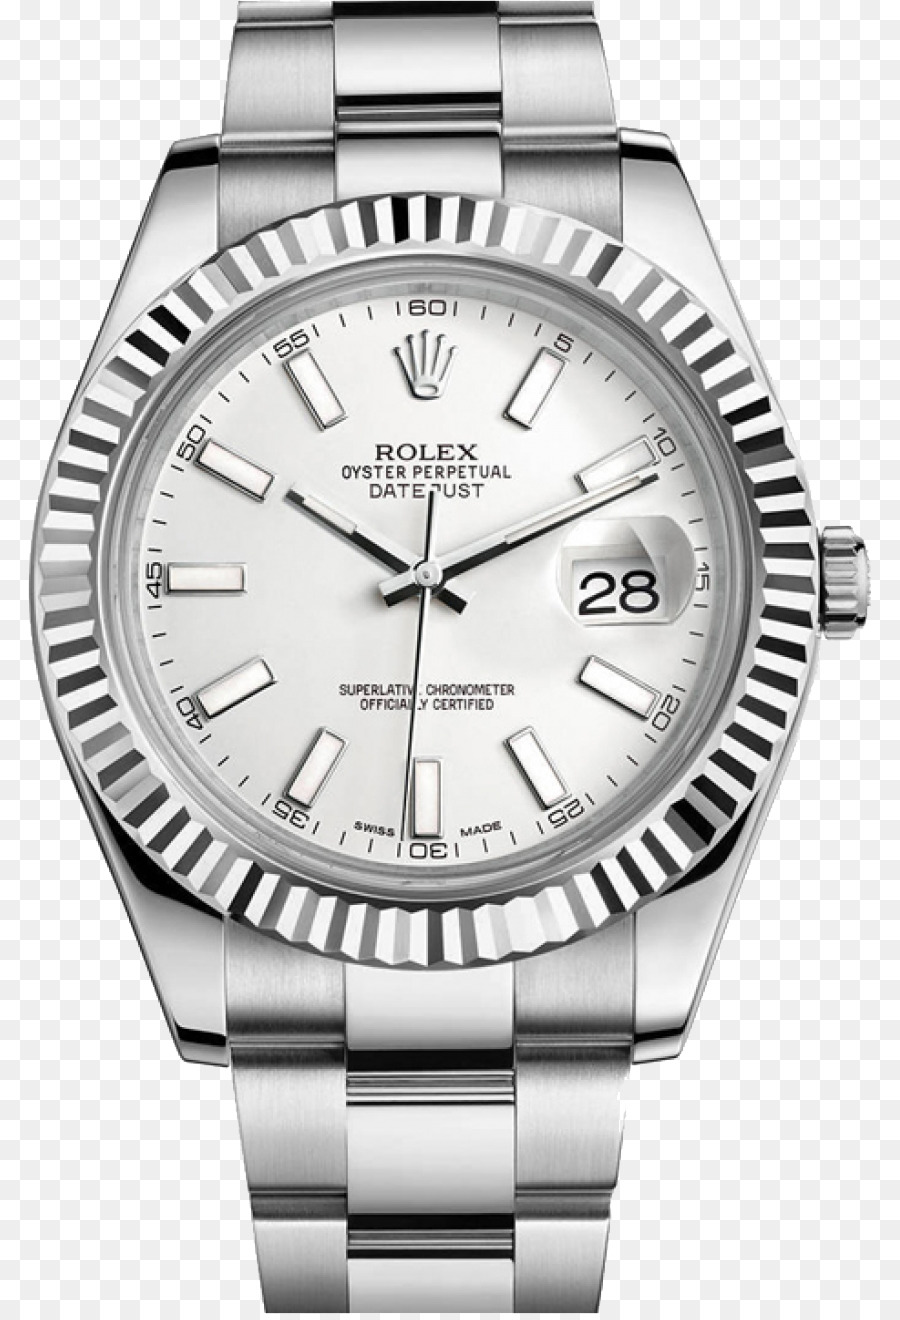 46dfb2094f9 Rolex Datejust Watch Rolex Oyster Perpetual Datejust Colored gold - rolex  png download - 843 1314 - Free Transparent Rolex Datejust png Download.